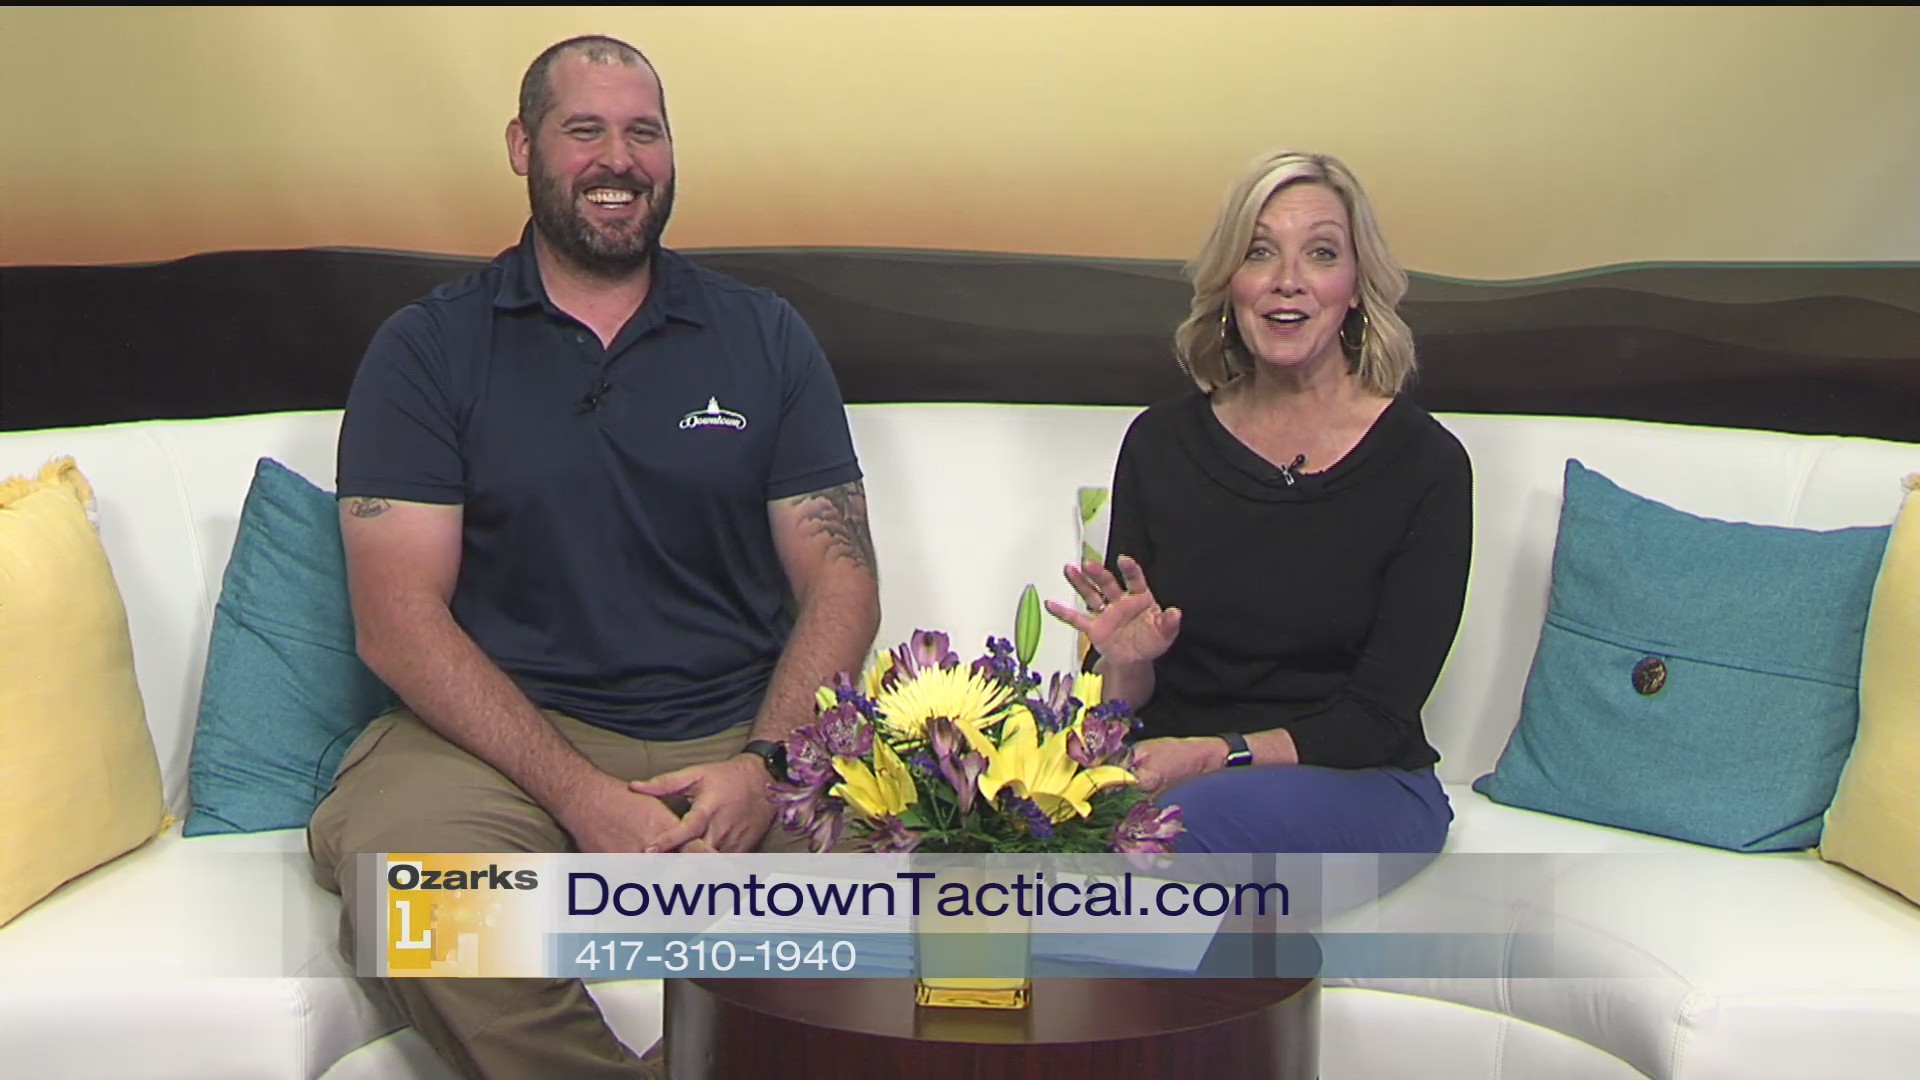 Downtown Tactical - 5/8/19